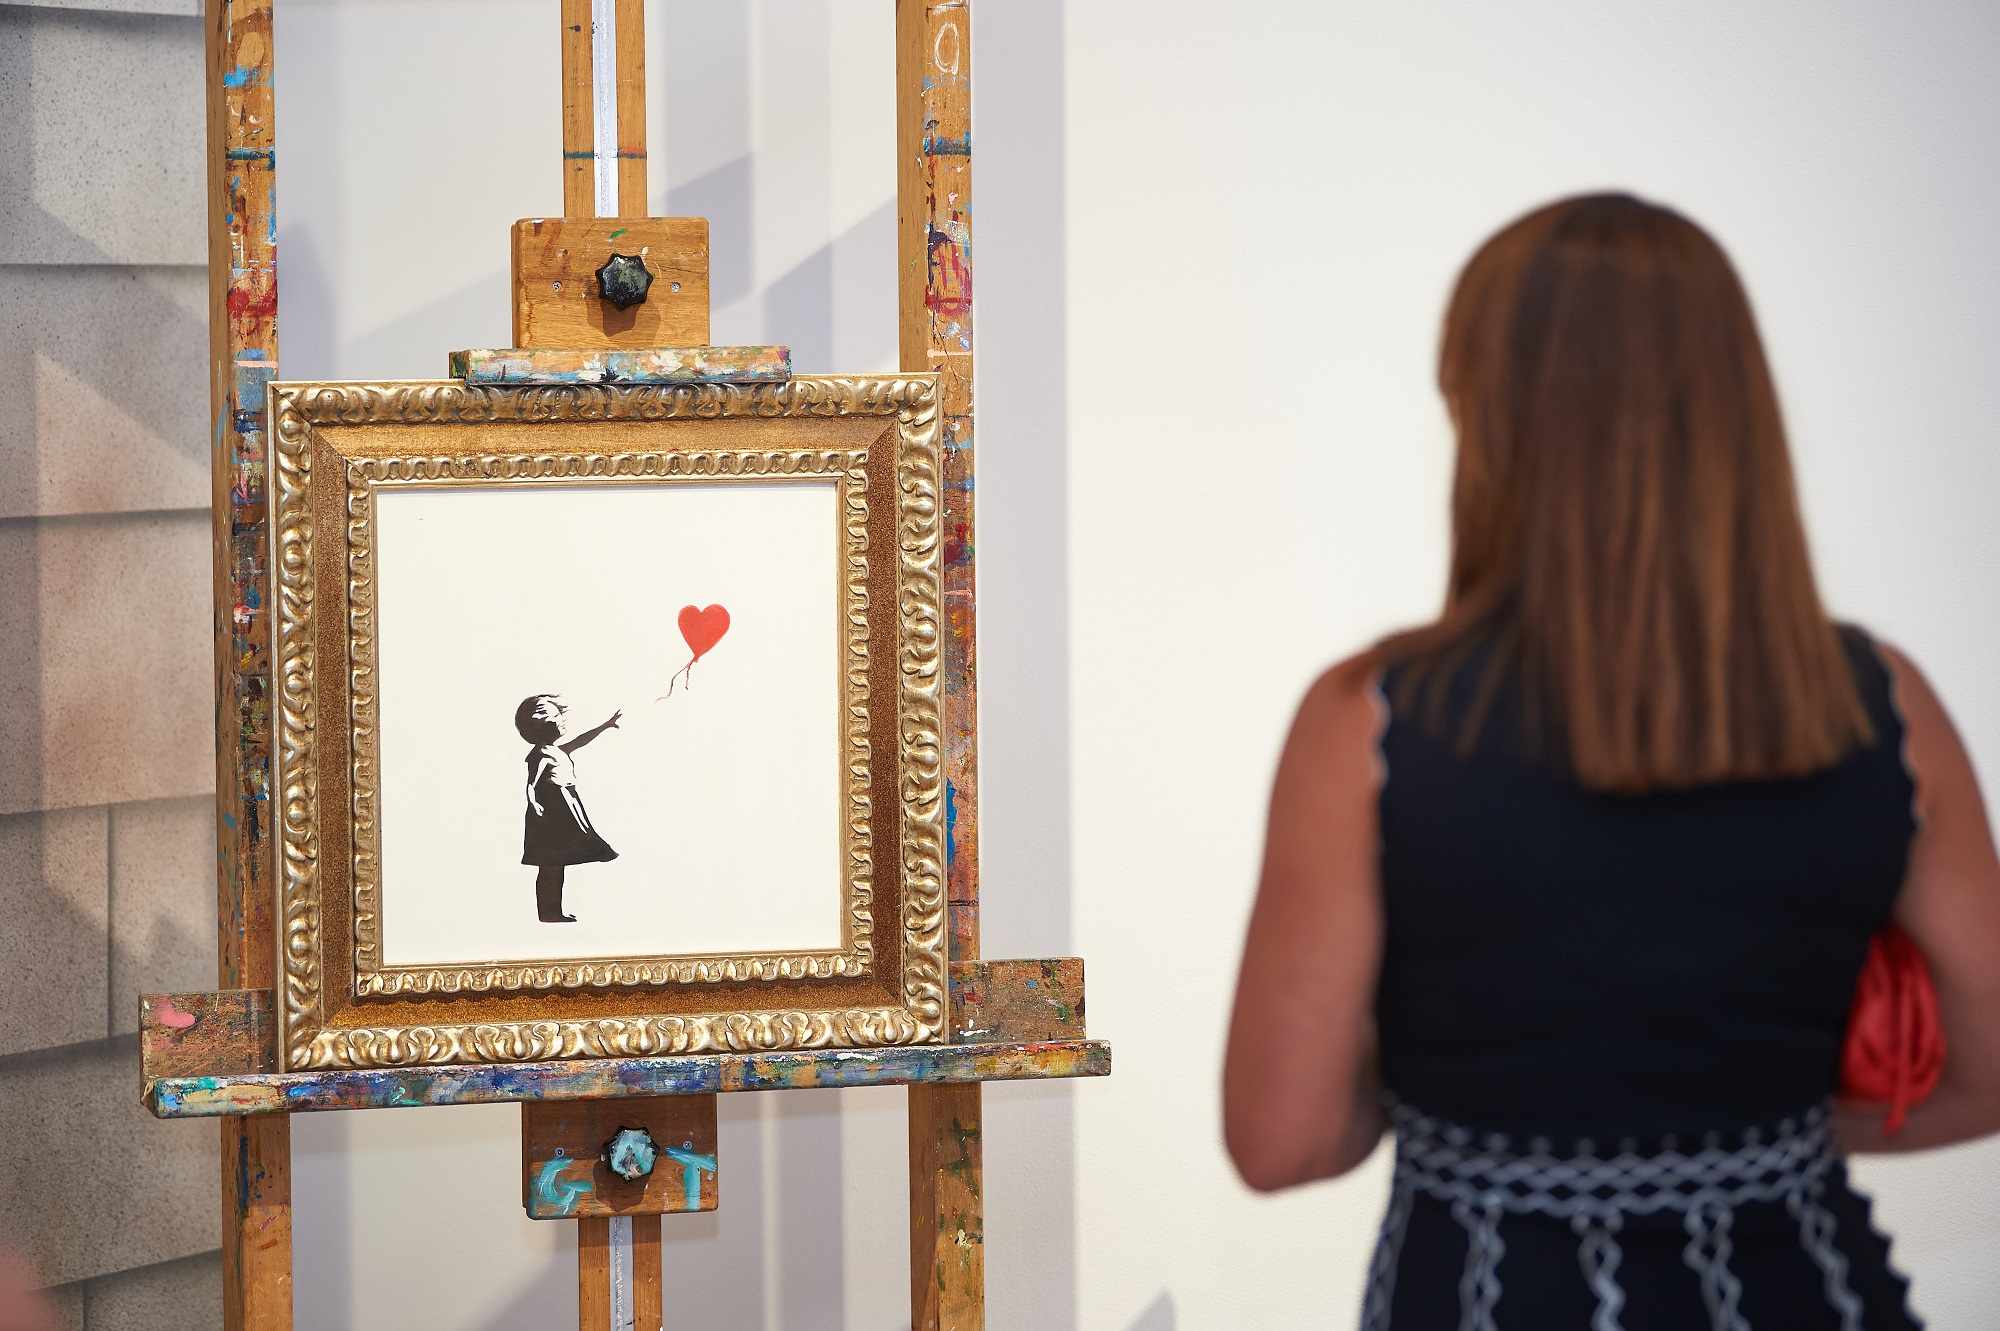 The World's Largest Banksy Experience at Mall of the Emirates